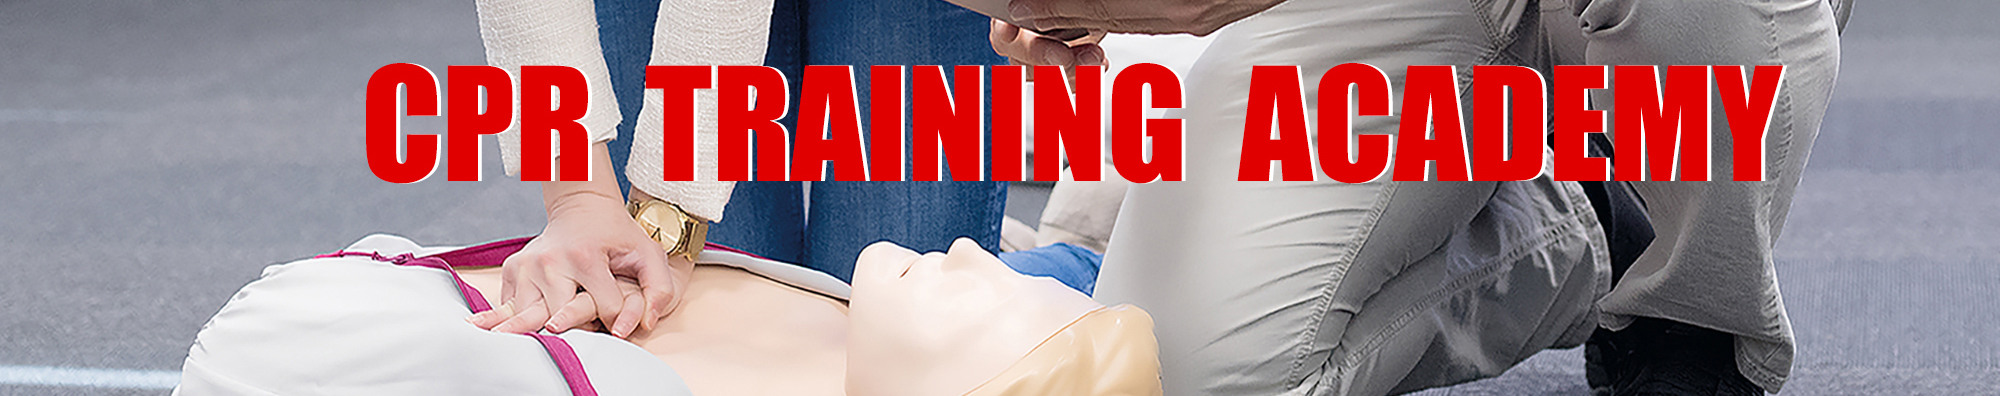 Cpr Training Academy Cpr Certification Classes In Las Vegas